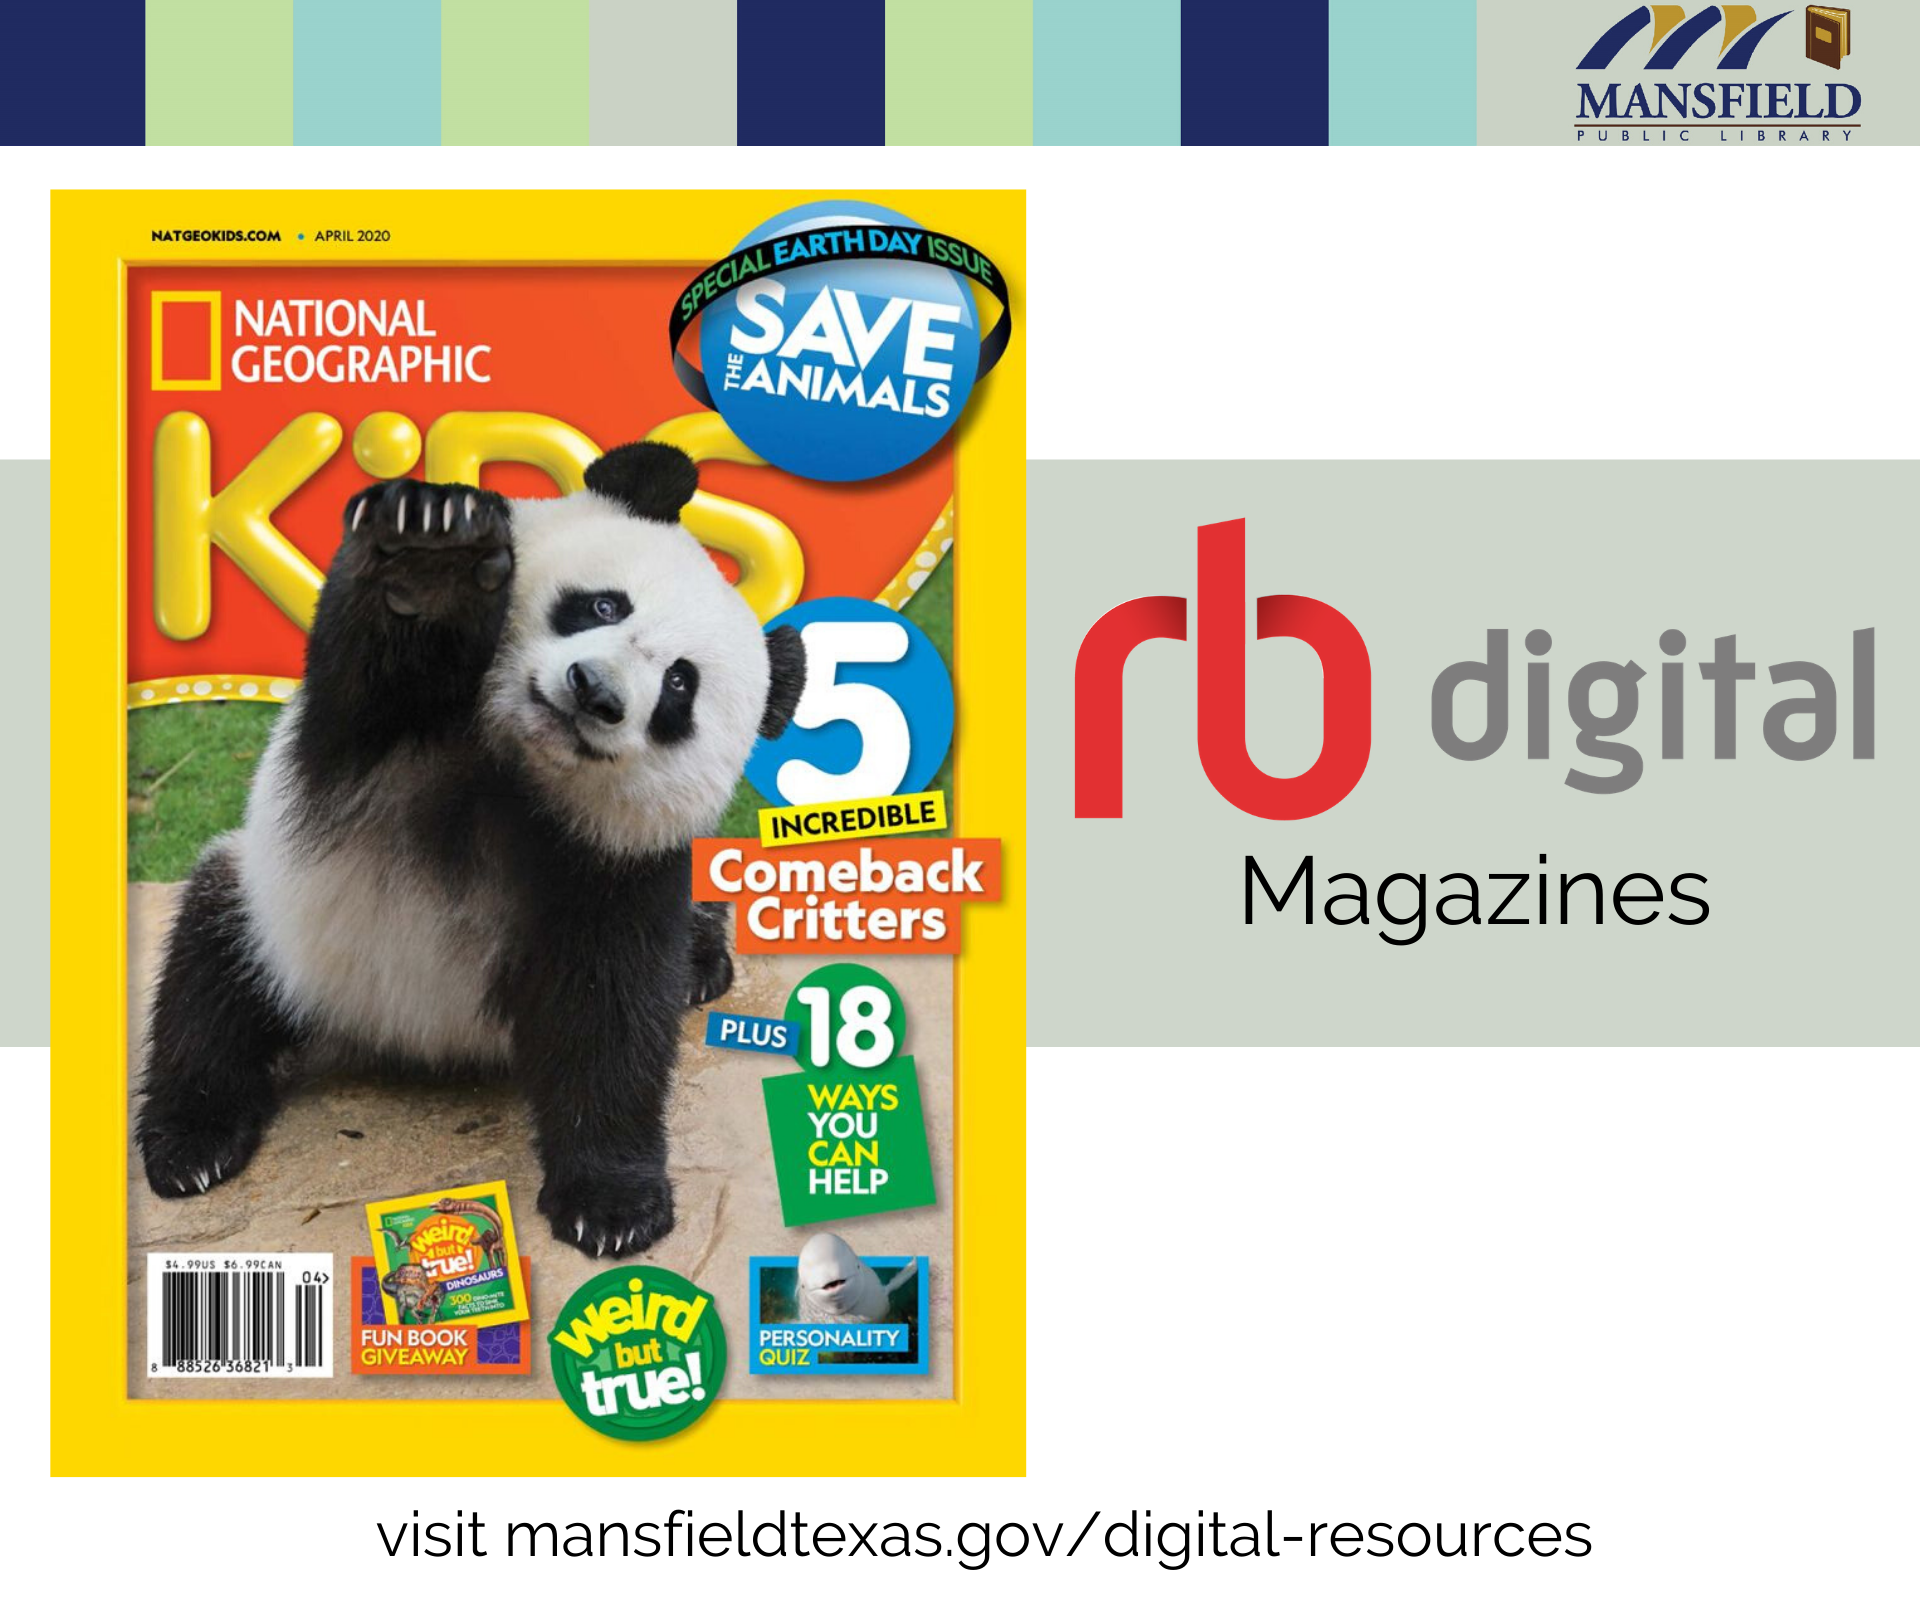 RB Digital Magazines logo with a magazine picture of a panda on the cover of National Geographic